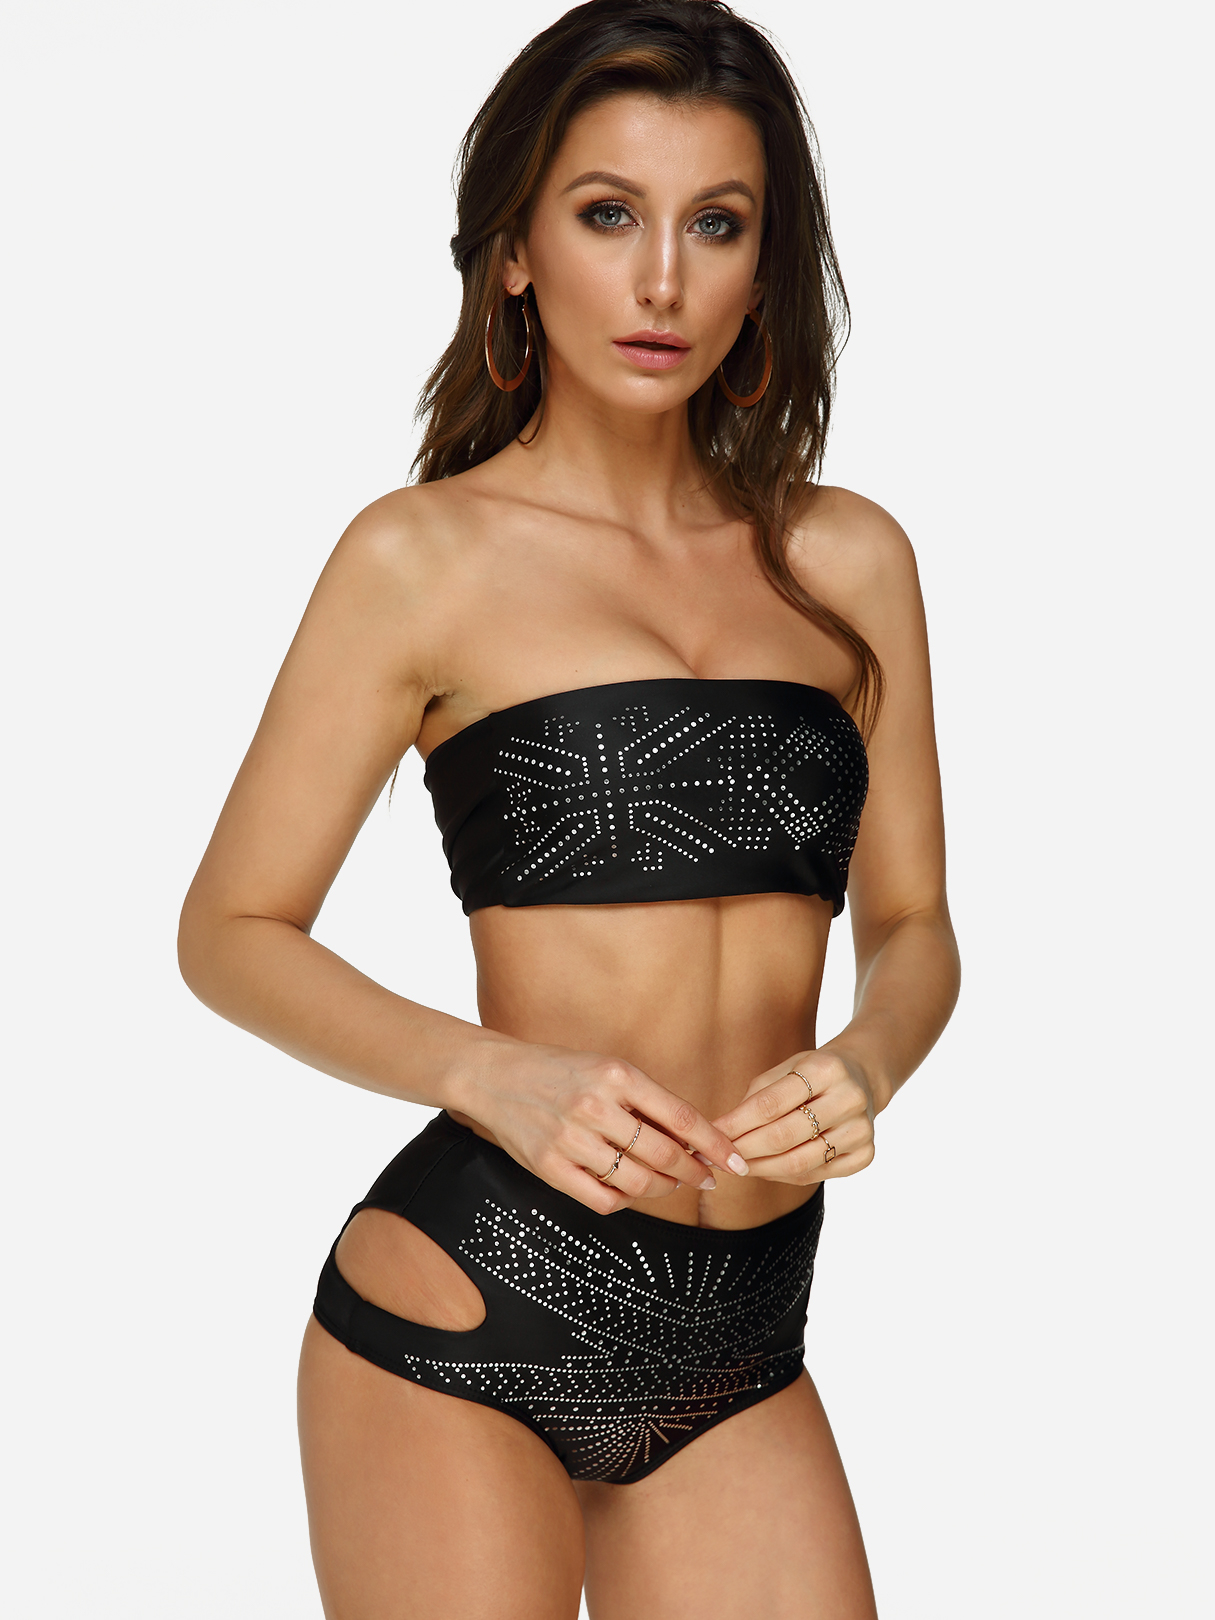 Black Rhinestone Design High-waisted Cutout Bandeau Bikini Set lg ms2043hs